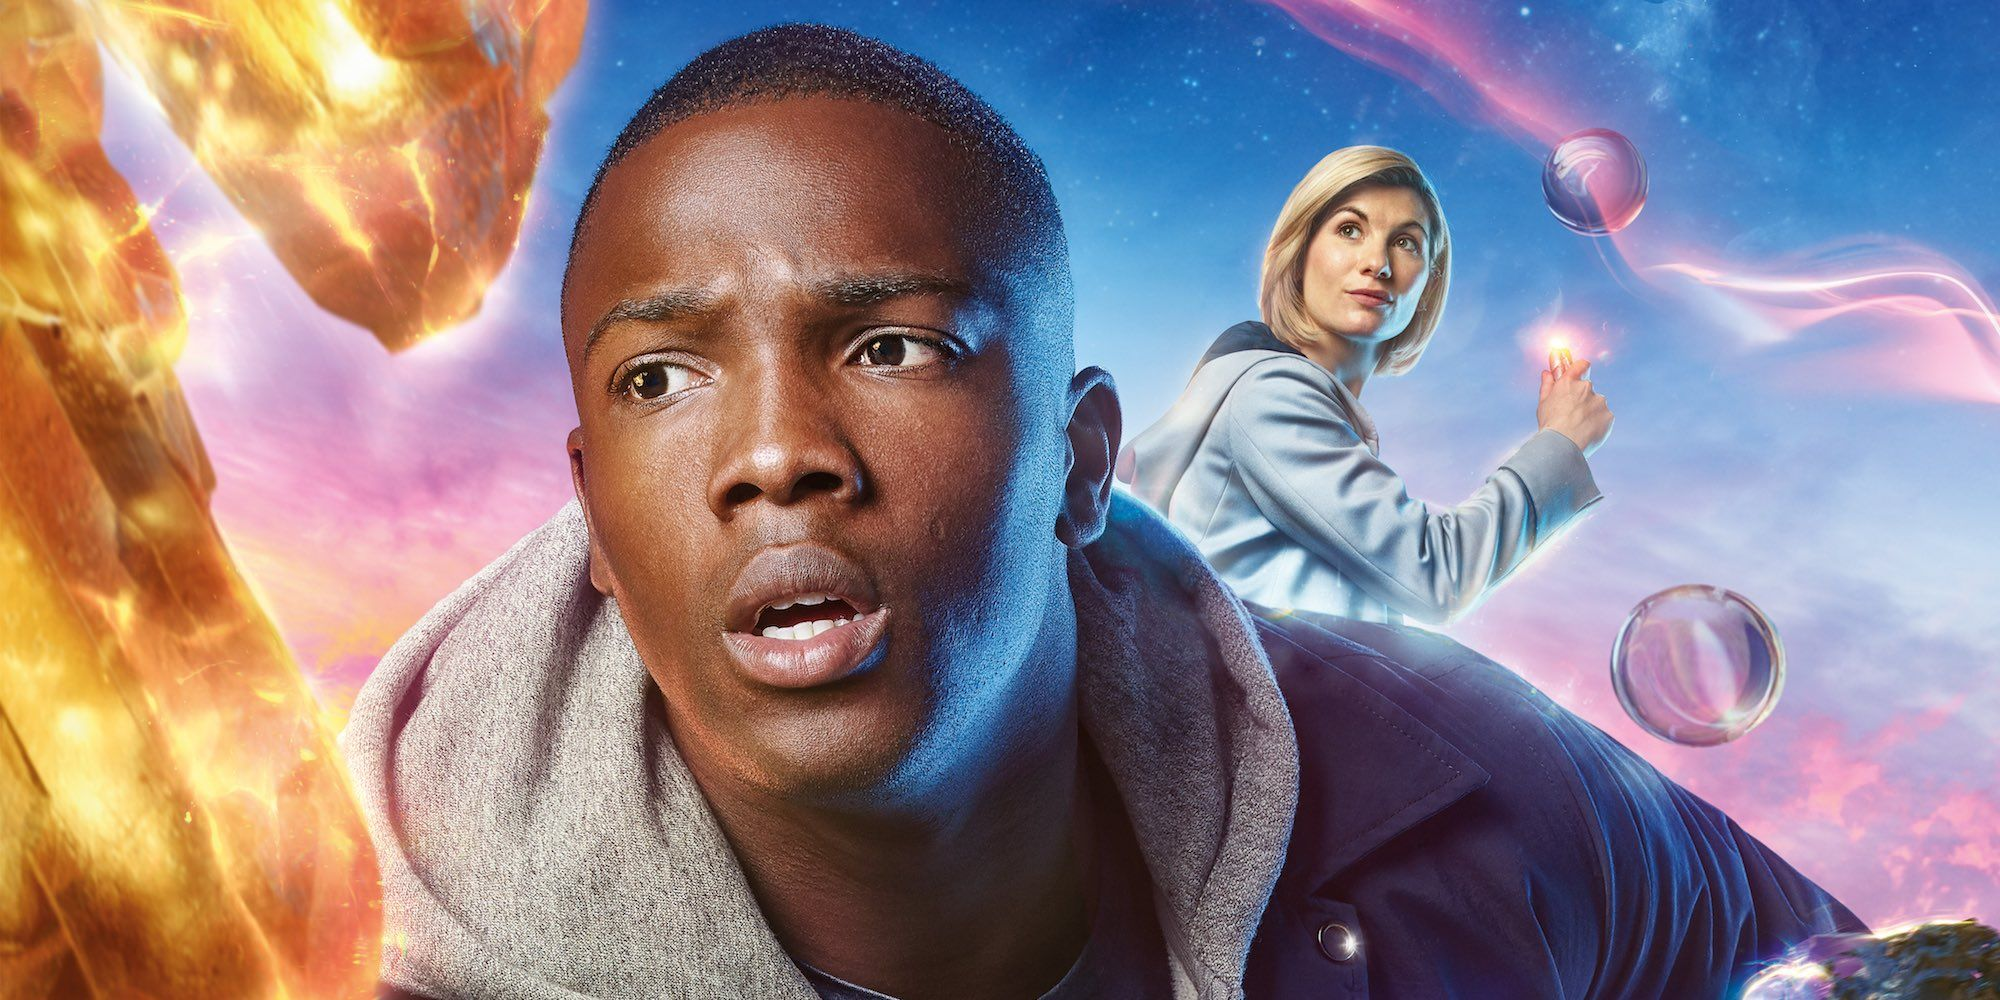 Doctor Who Companion's New Show Casting Sparks Exit Rumors